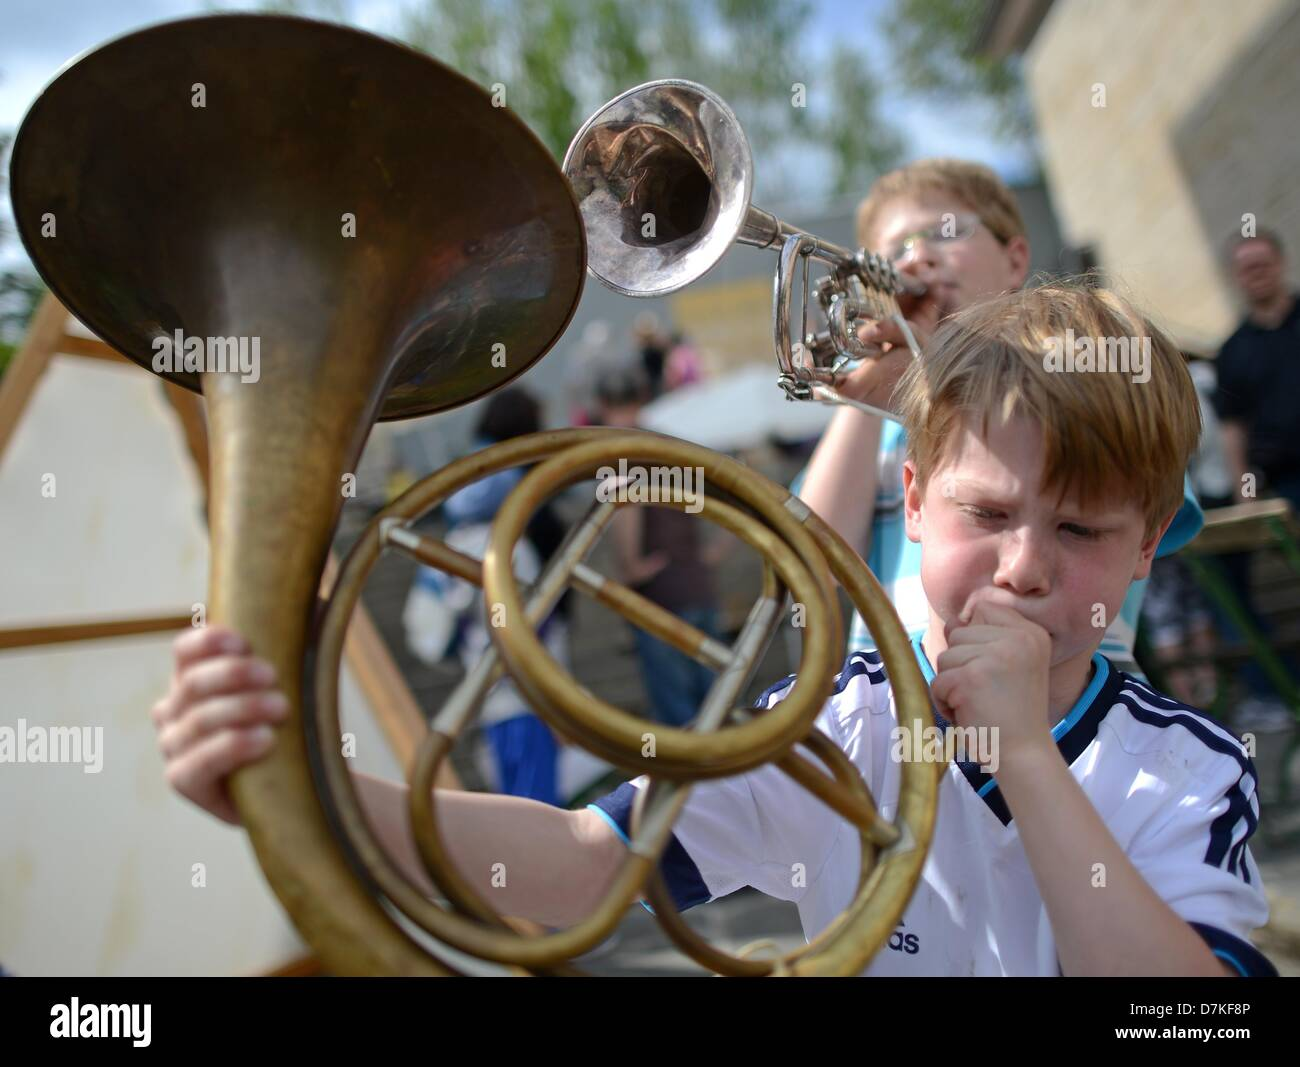 Students Erik and Bastian (front) try instruments from the Mozart Society at the 5th Deutsches Musikfest (German - Stock Image